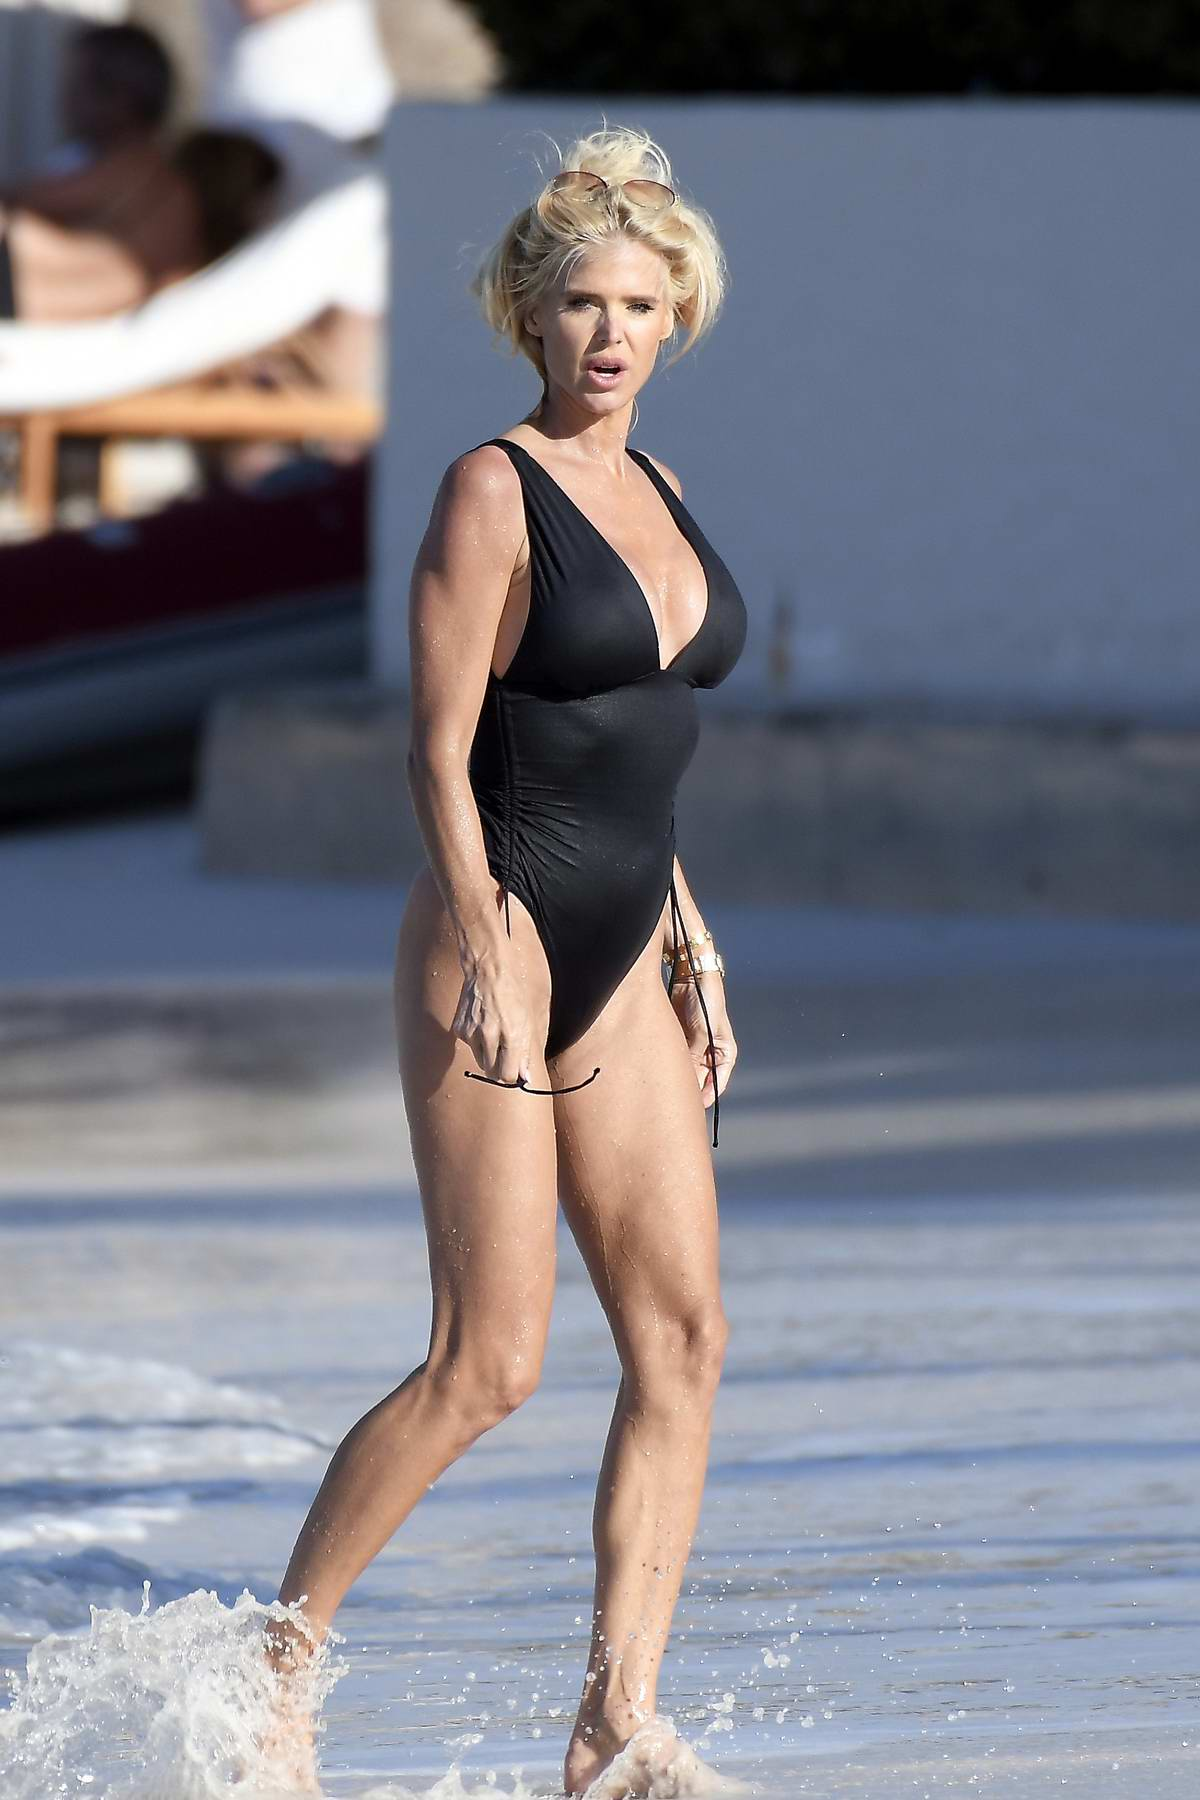 Victoria Silvstedt shows off her amazing figure in a black swimsuit while enjoying the sun in St Barts, France